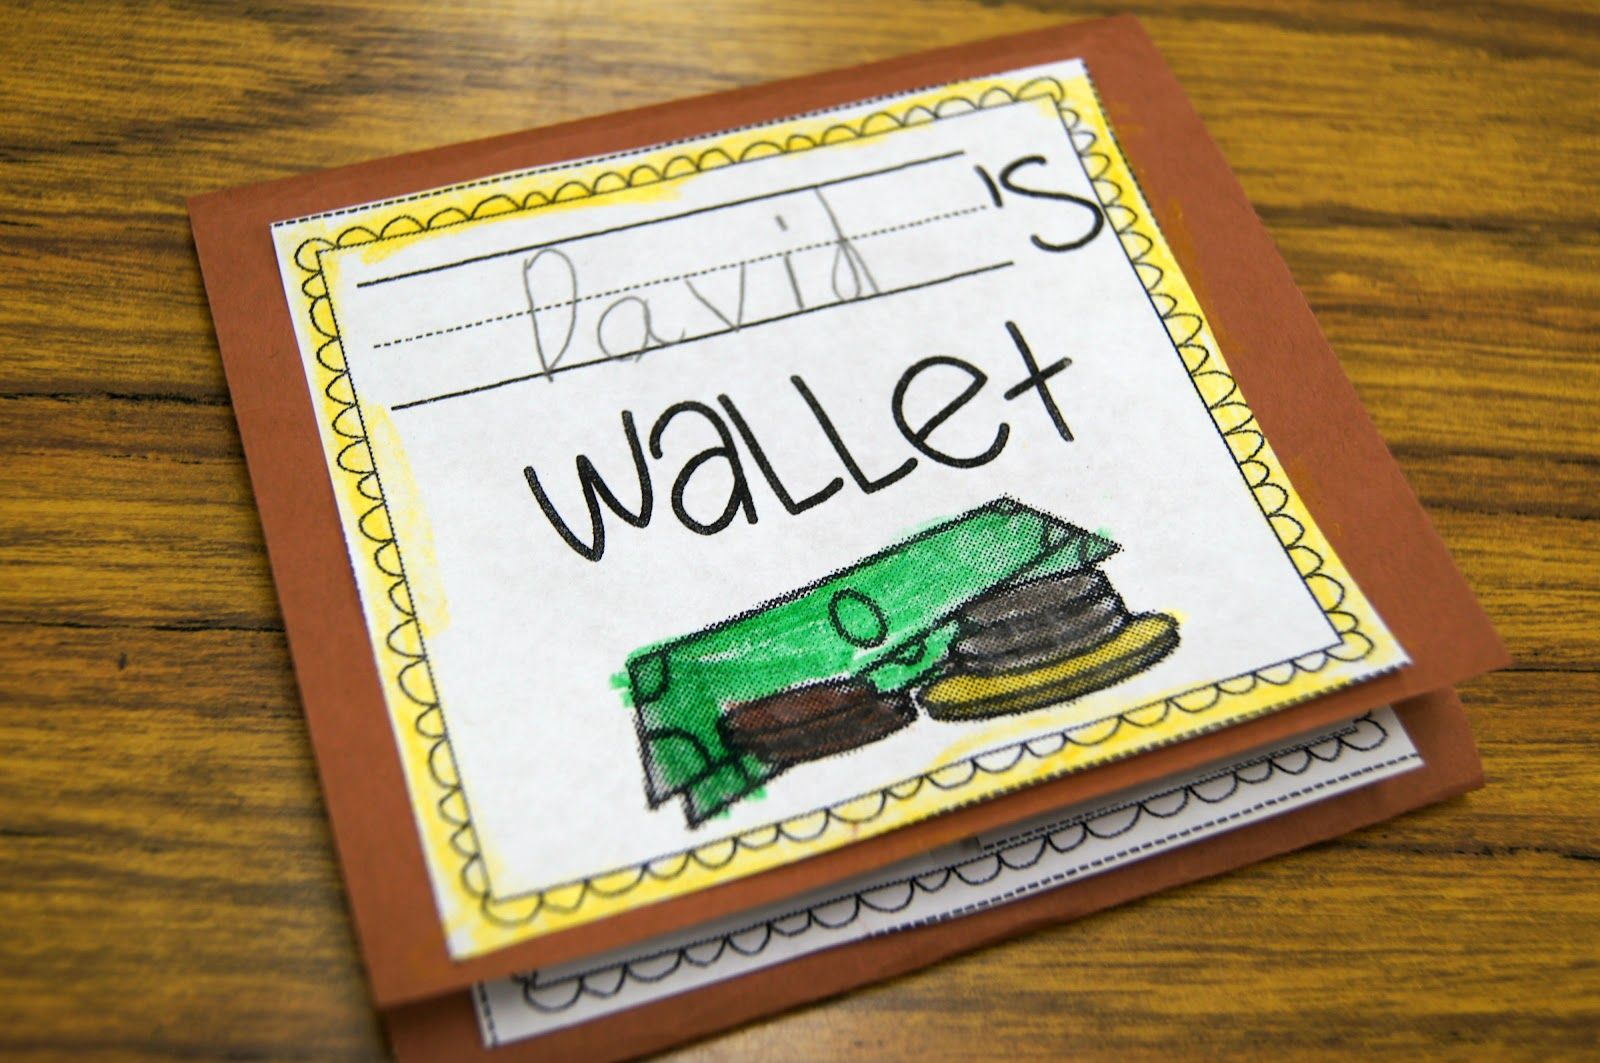 Paper Wallets To Make When Talking About Money There Is A Spot For Pictures Of Each Type Of